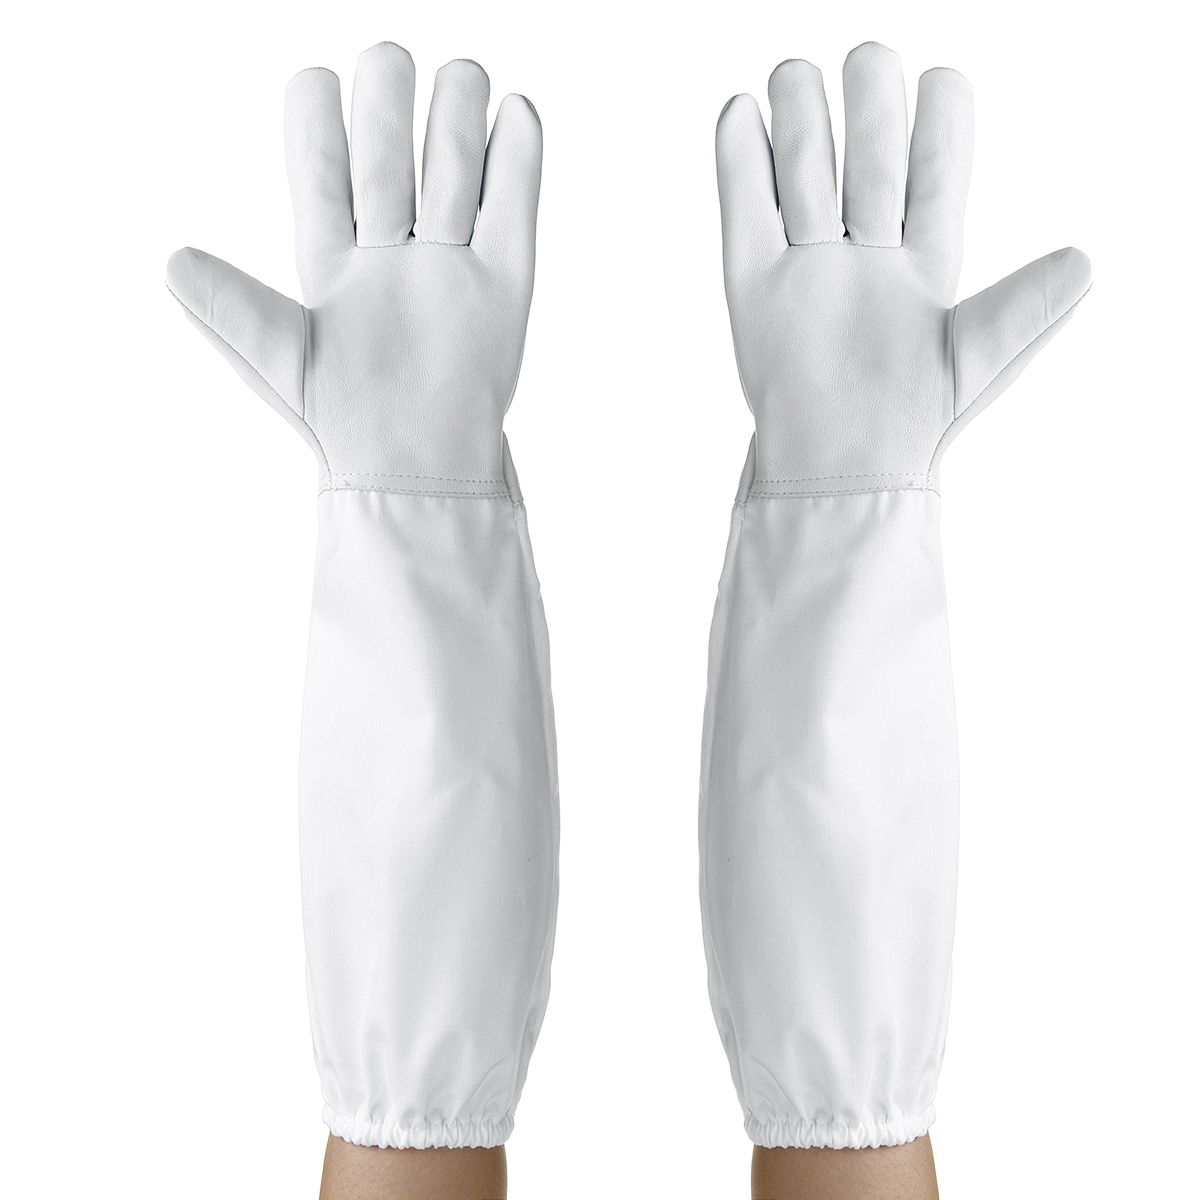 Professional Beekeeping Gloves Sheepskin Ventilated Bee Keeping Gloves Beekeeping Tools